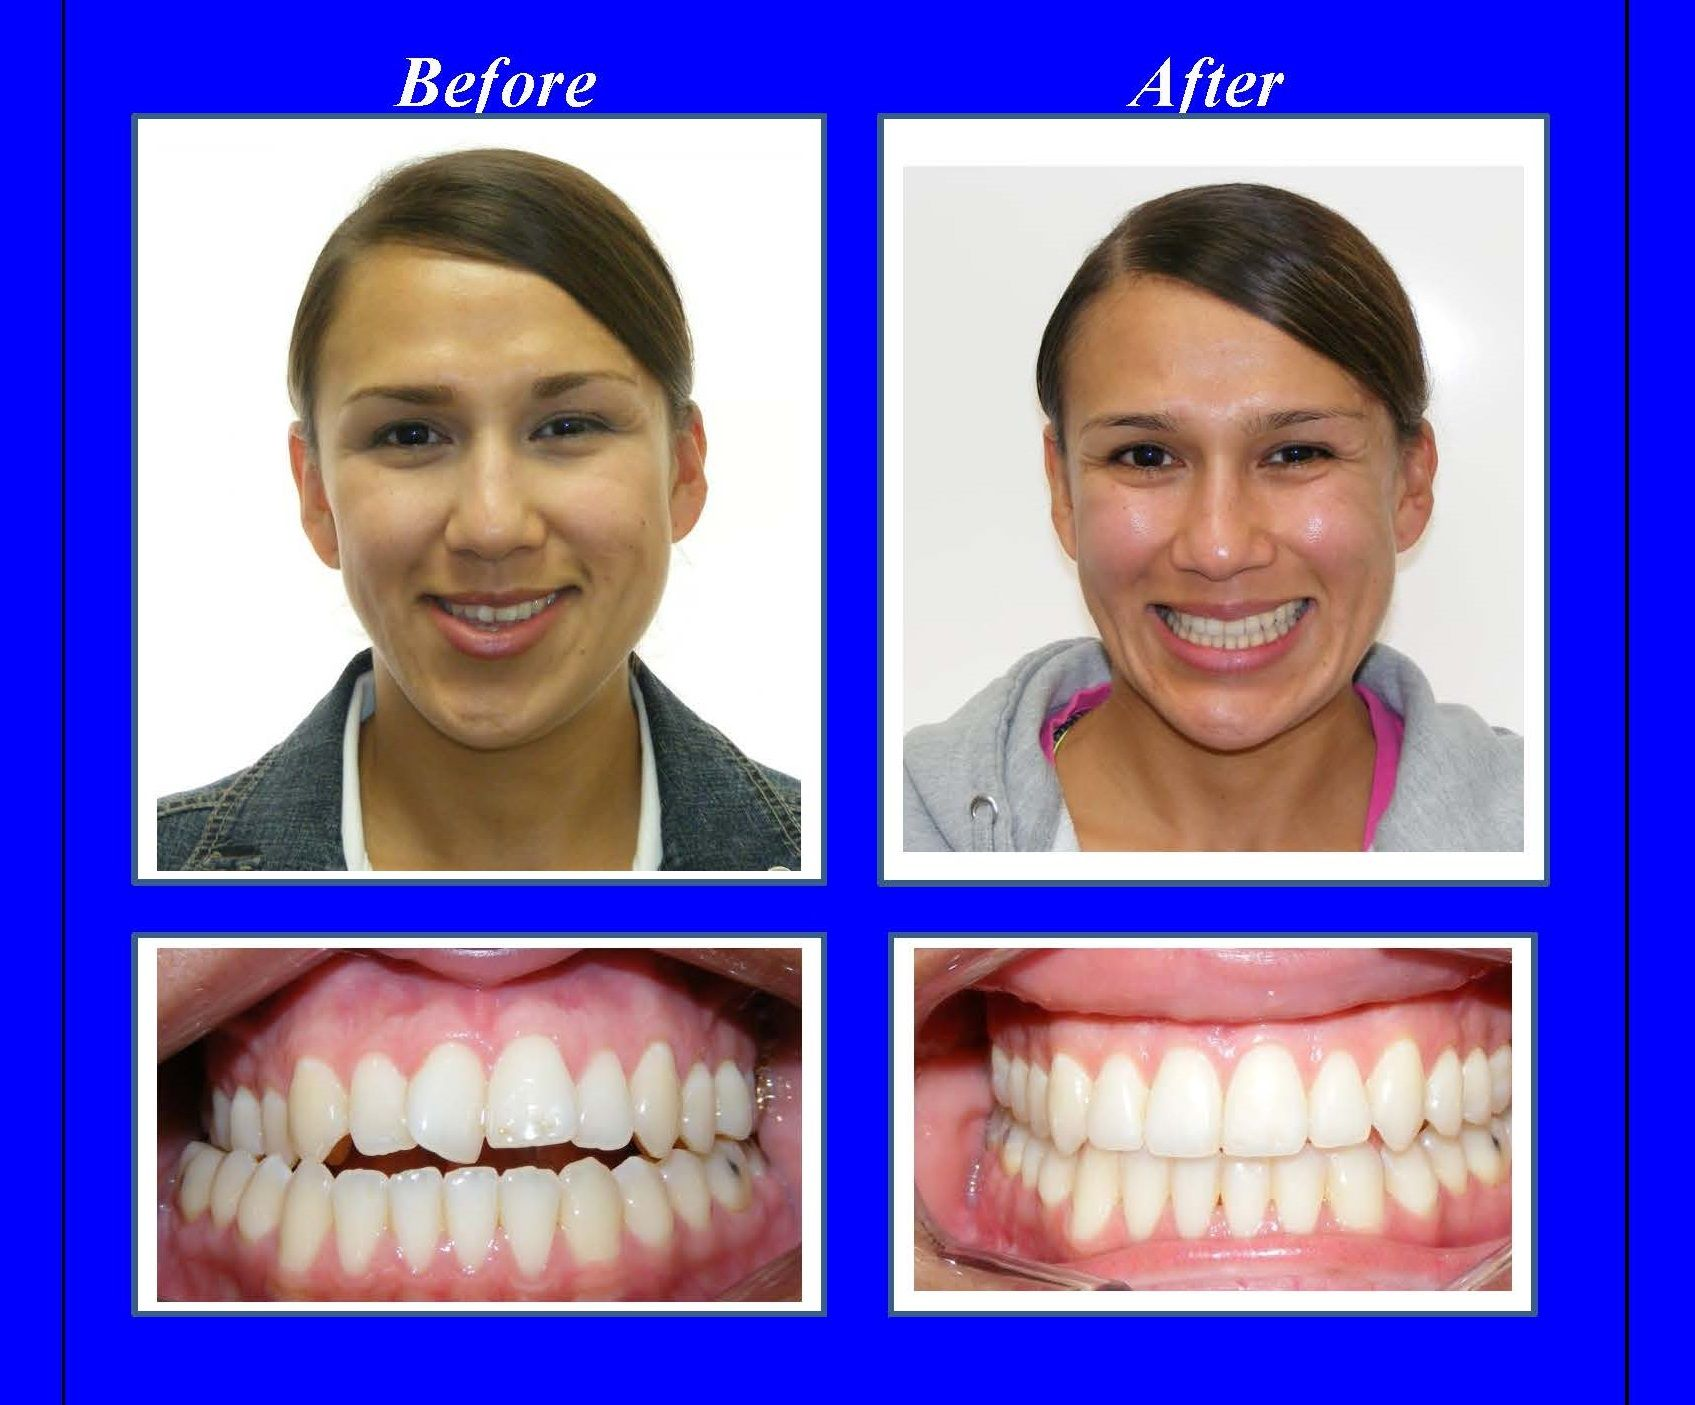 This woman had a severe malocclusion with a narrow upper